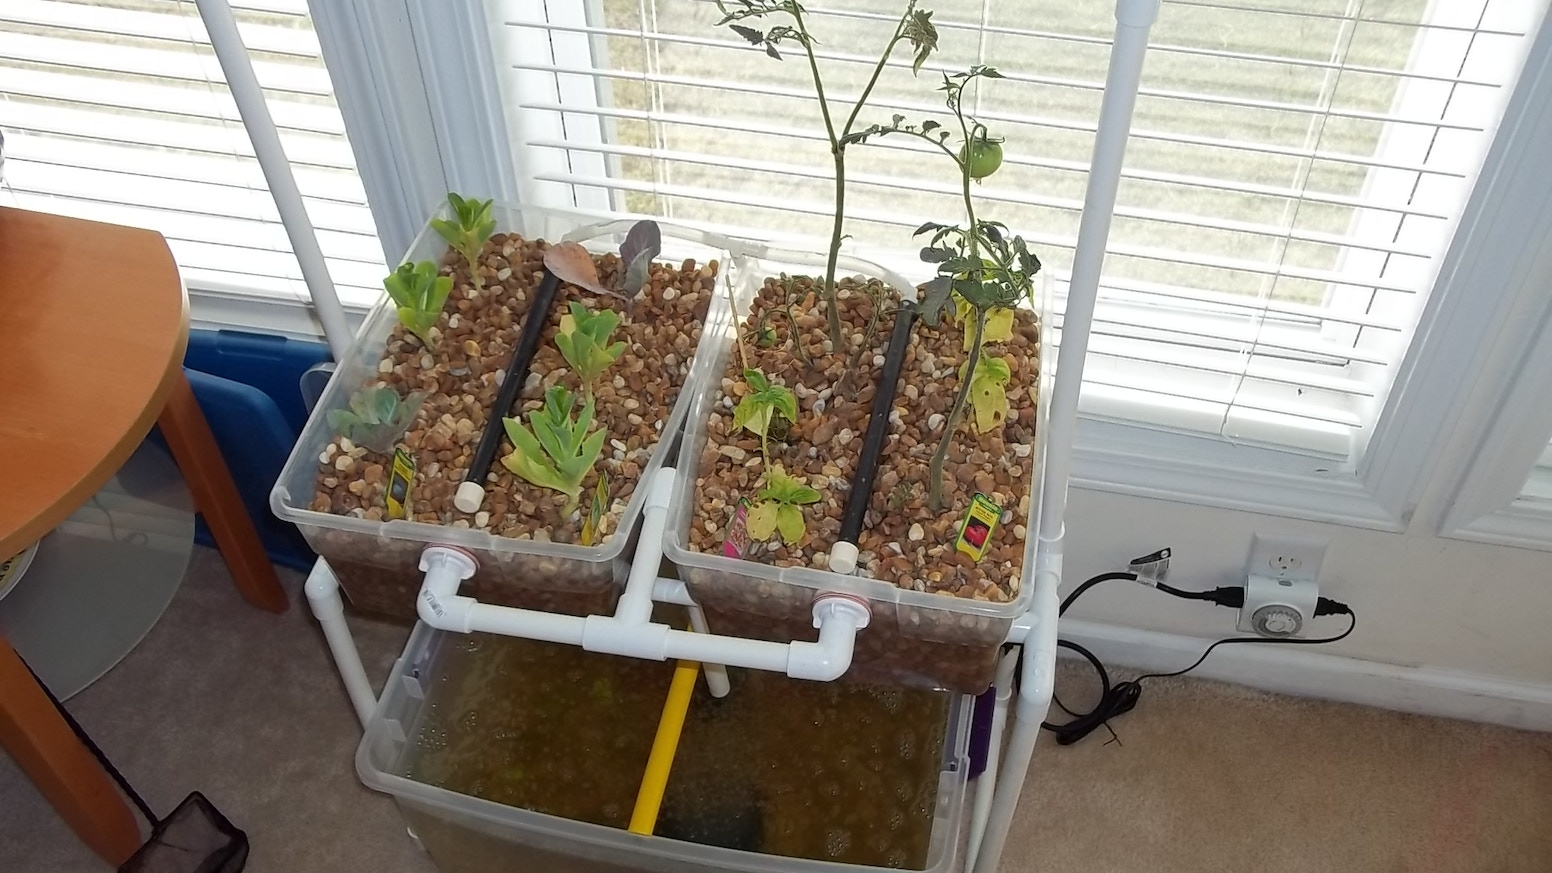 This System Will Let You Grow Food And Raise Fish In A Small Amount Of E Right Your Home Or Apartment All Year Long